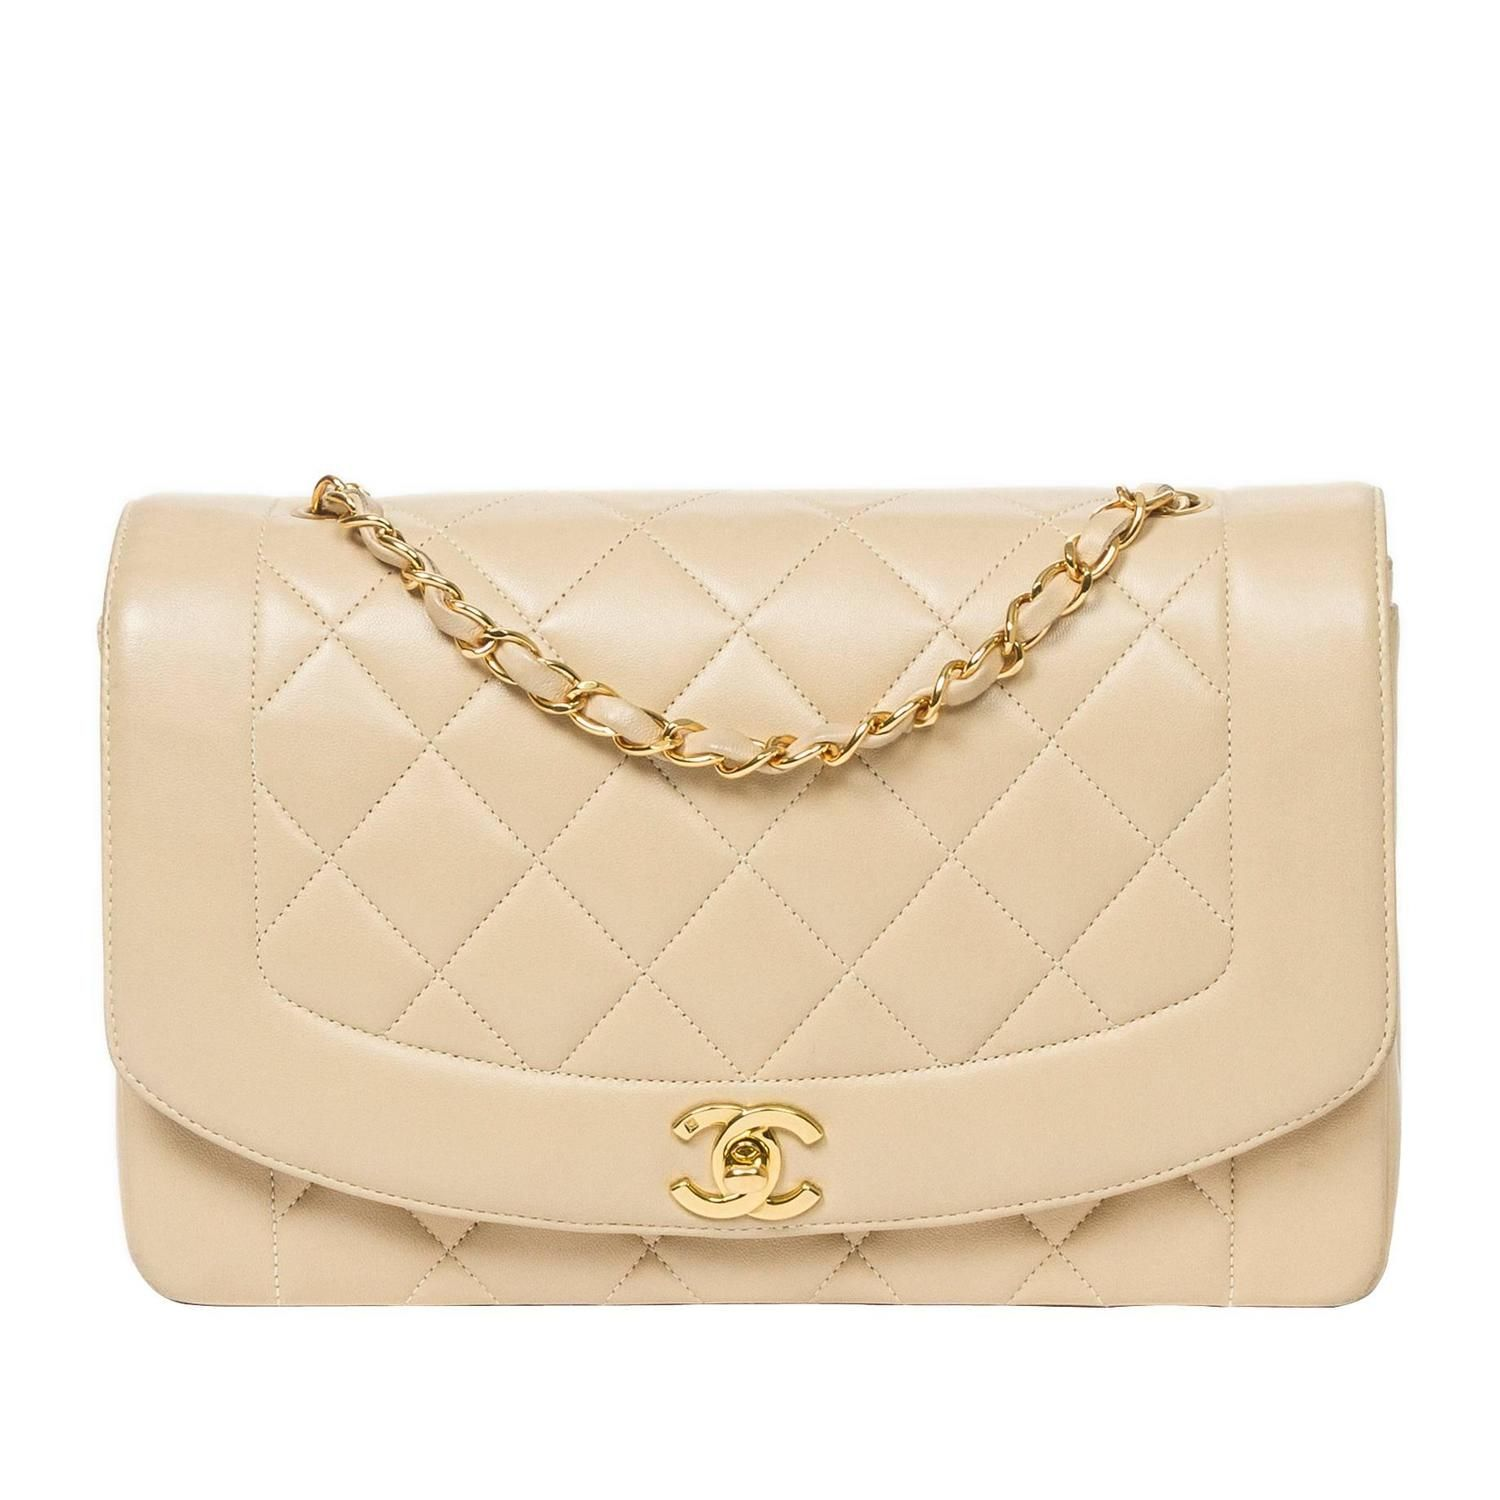 Chanel Vintage Mademoie Flap Beige Quilted Leather 1990